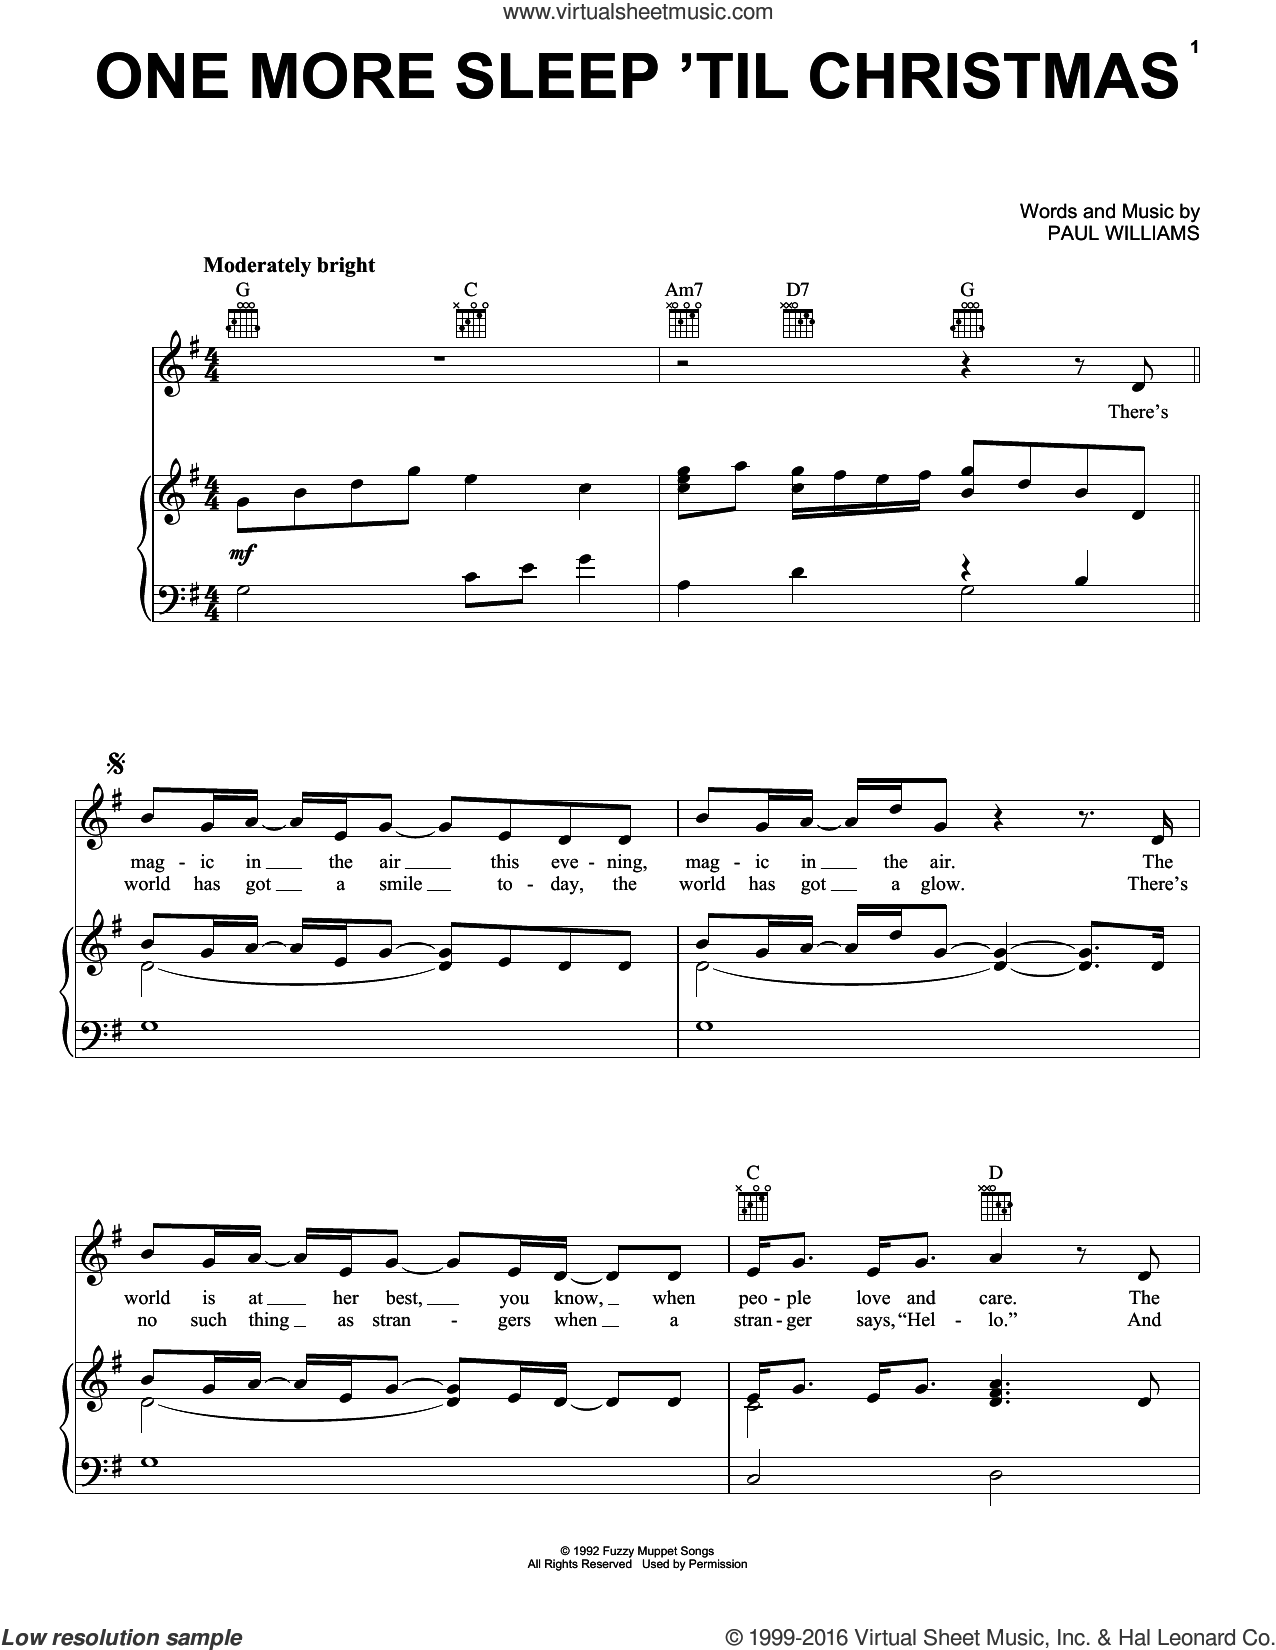 One More Sleep 'Til Christmas (from The Muppet Christmas Carol) sheet music for voice, piano or guitar by Paul Williams, intermediate skill level